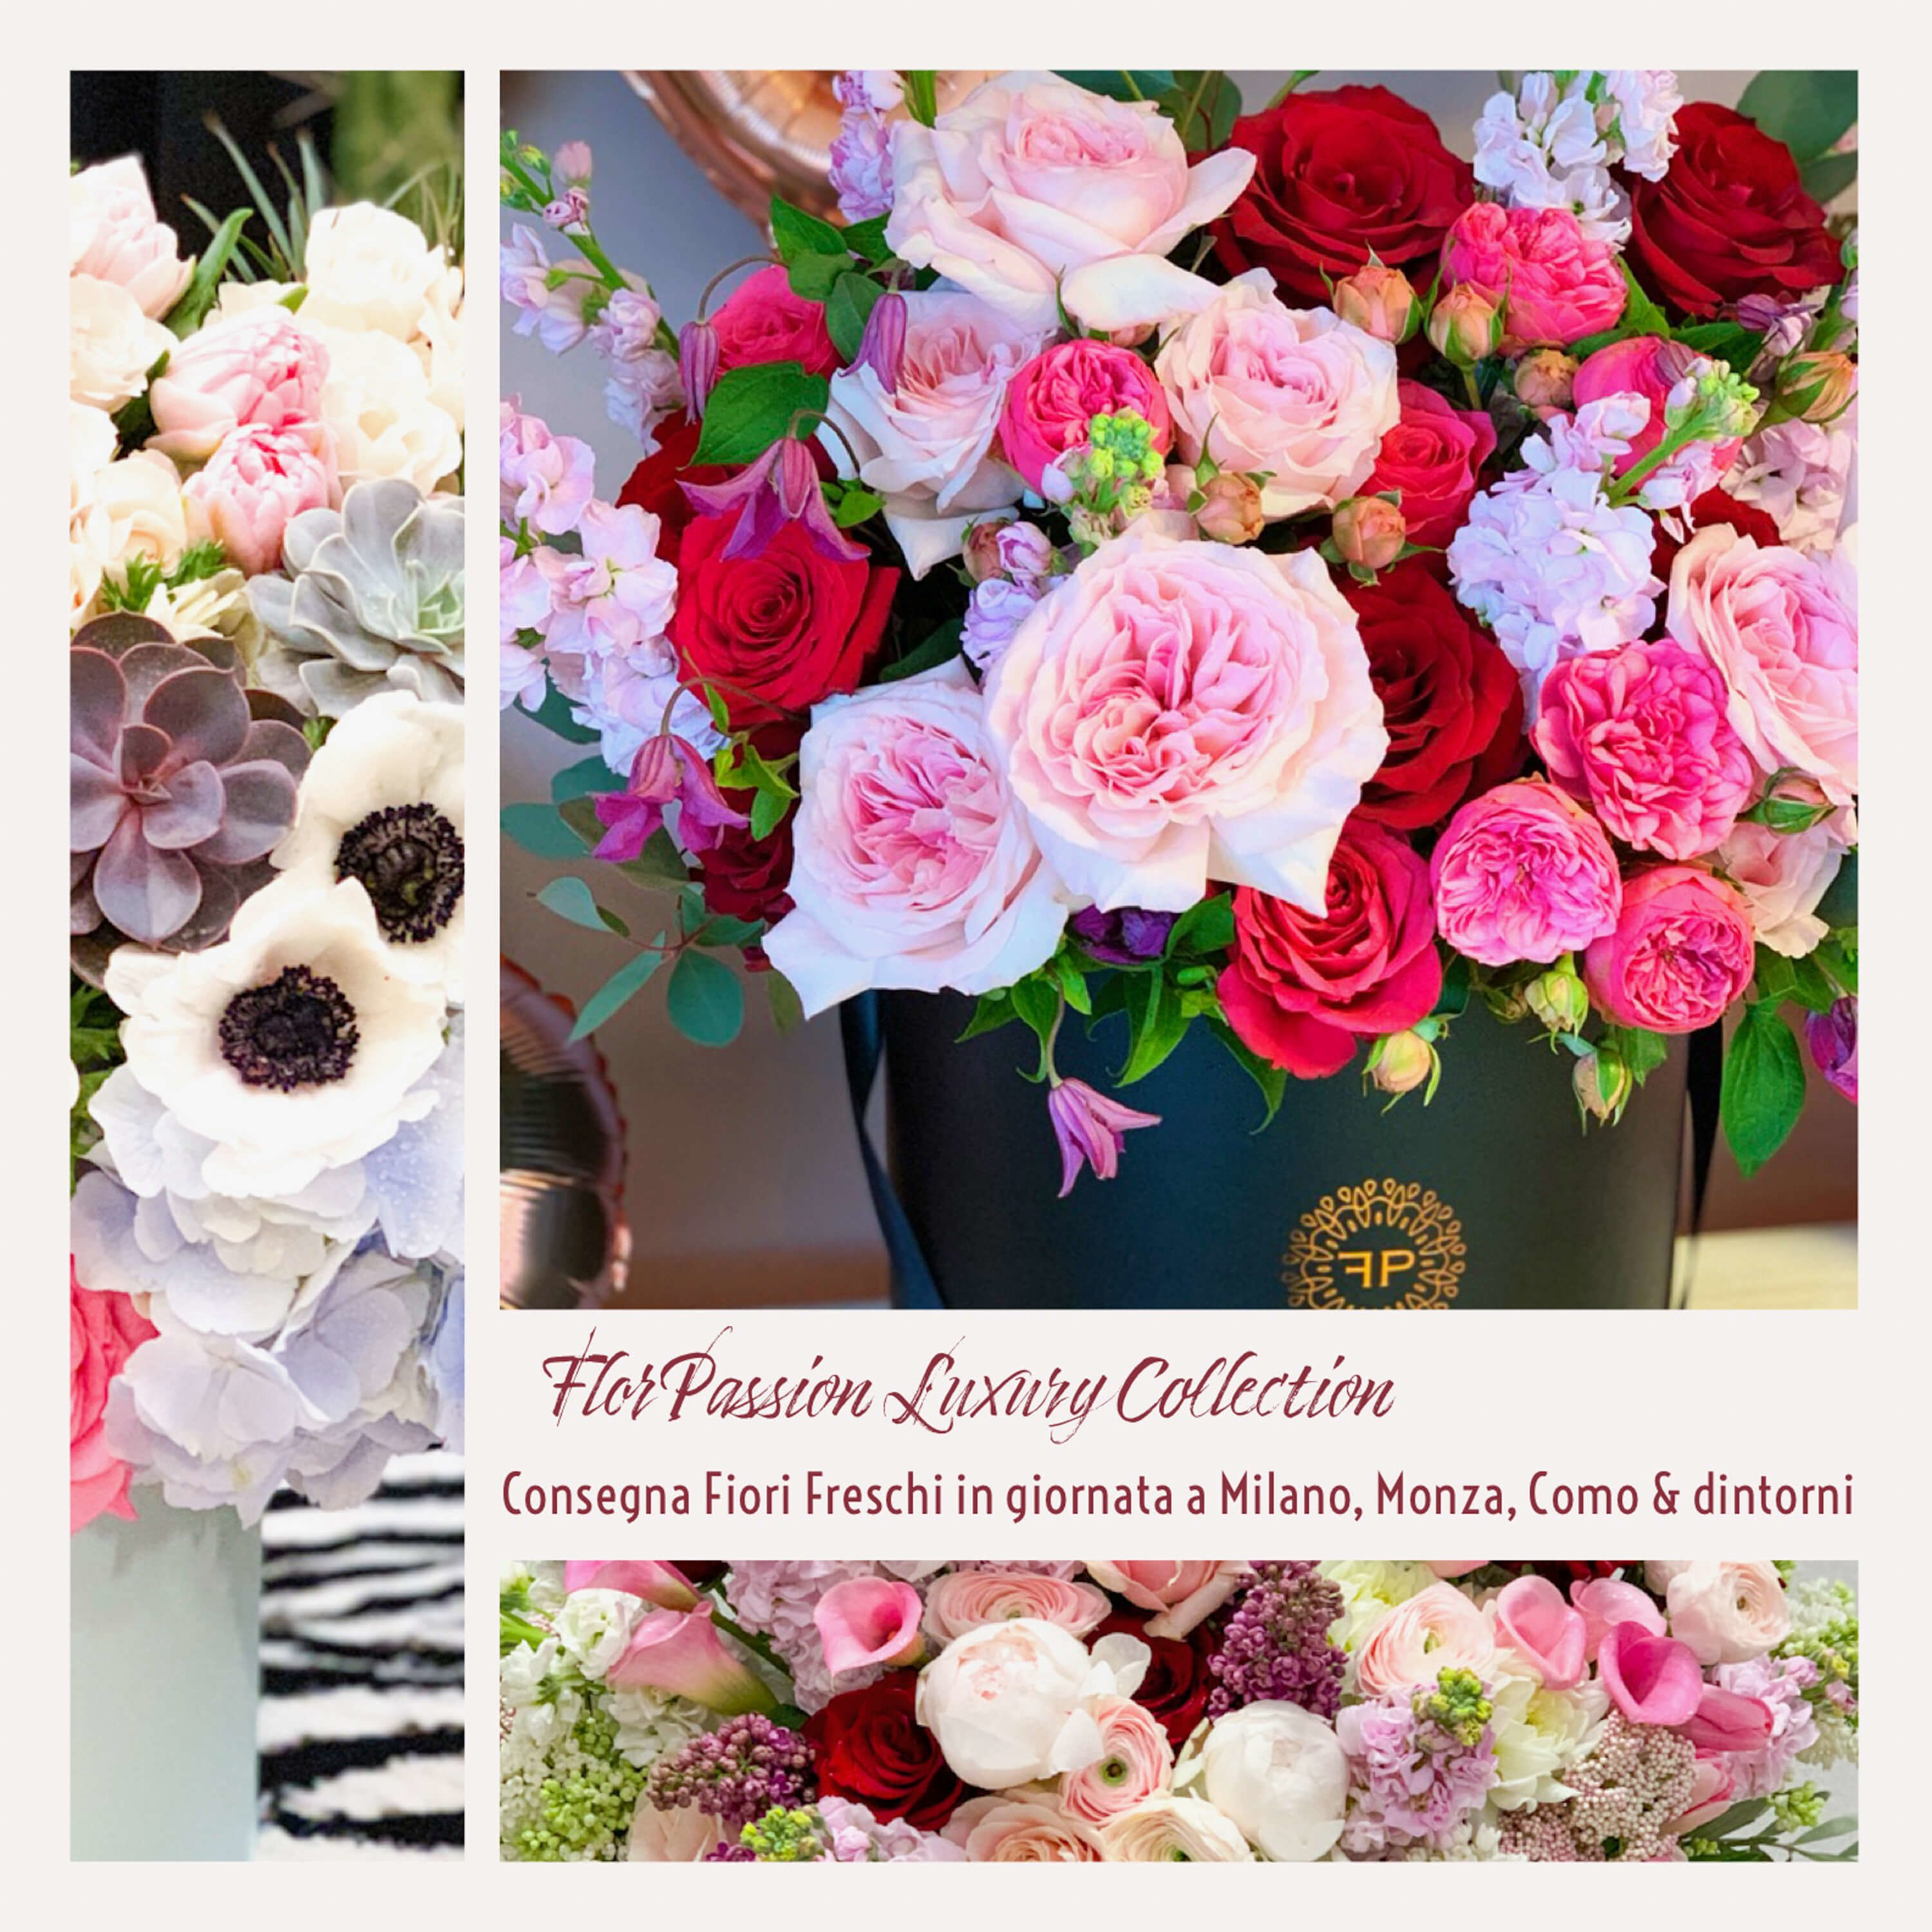 Luxury Collection FlorPassion Fiori Online